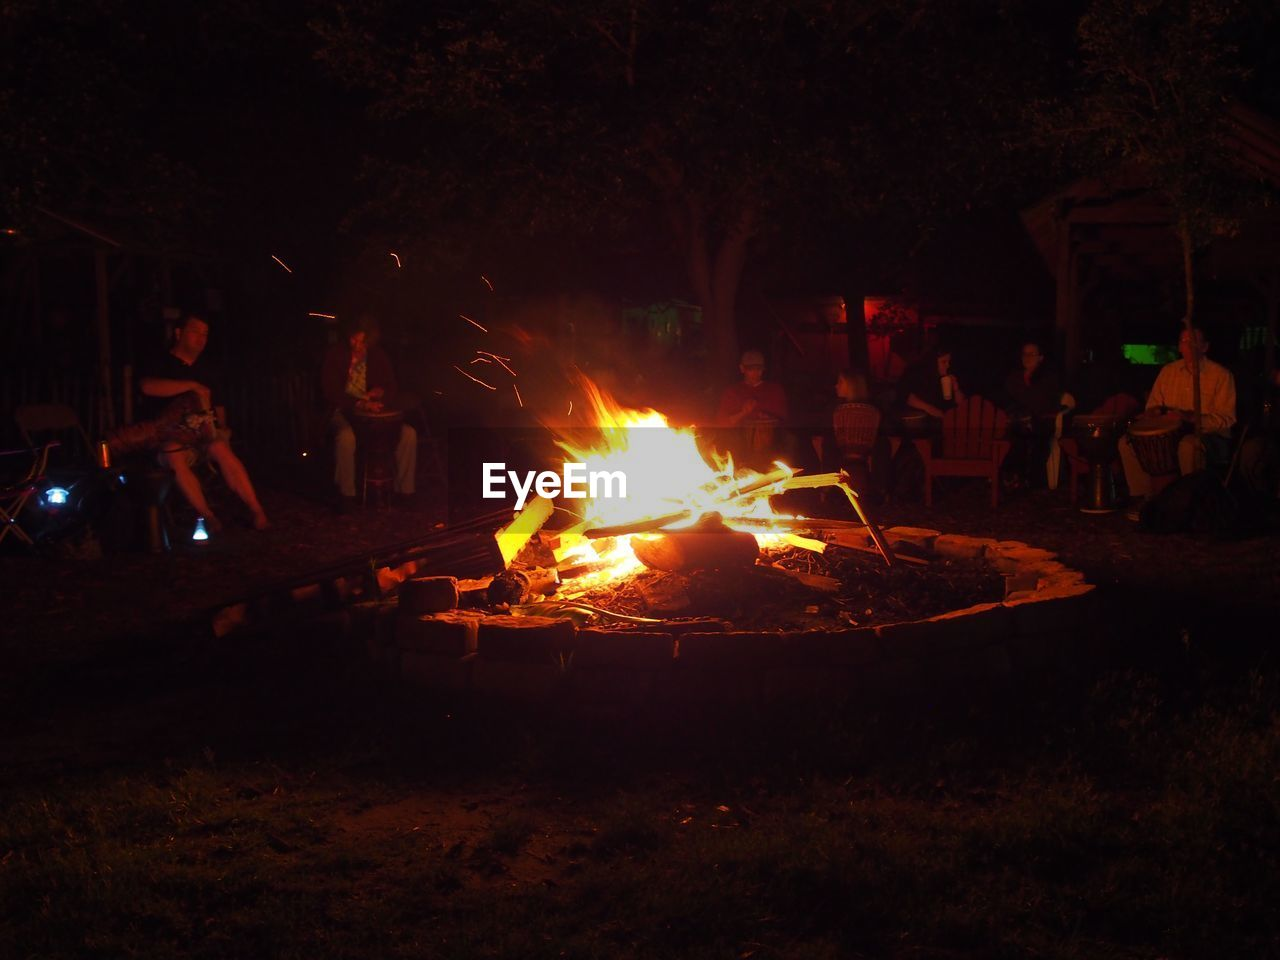 burning, flame, night, campfire, heat - temperature, camping, bonfire, outdoors, real people, men, nature, people